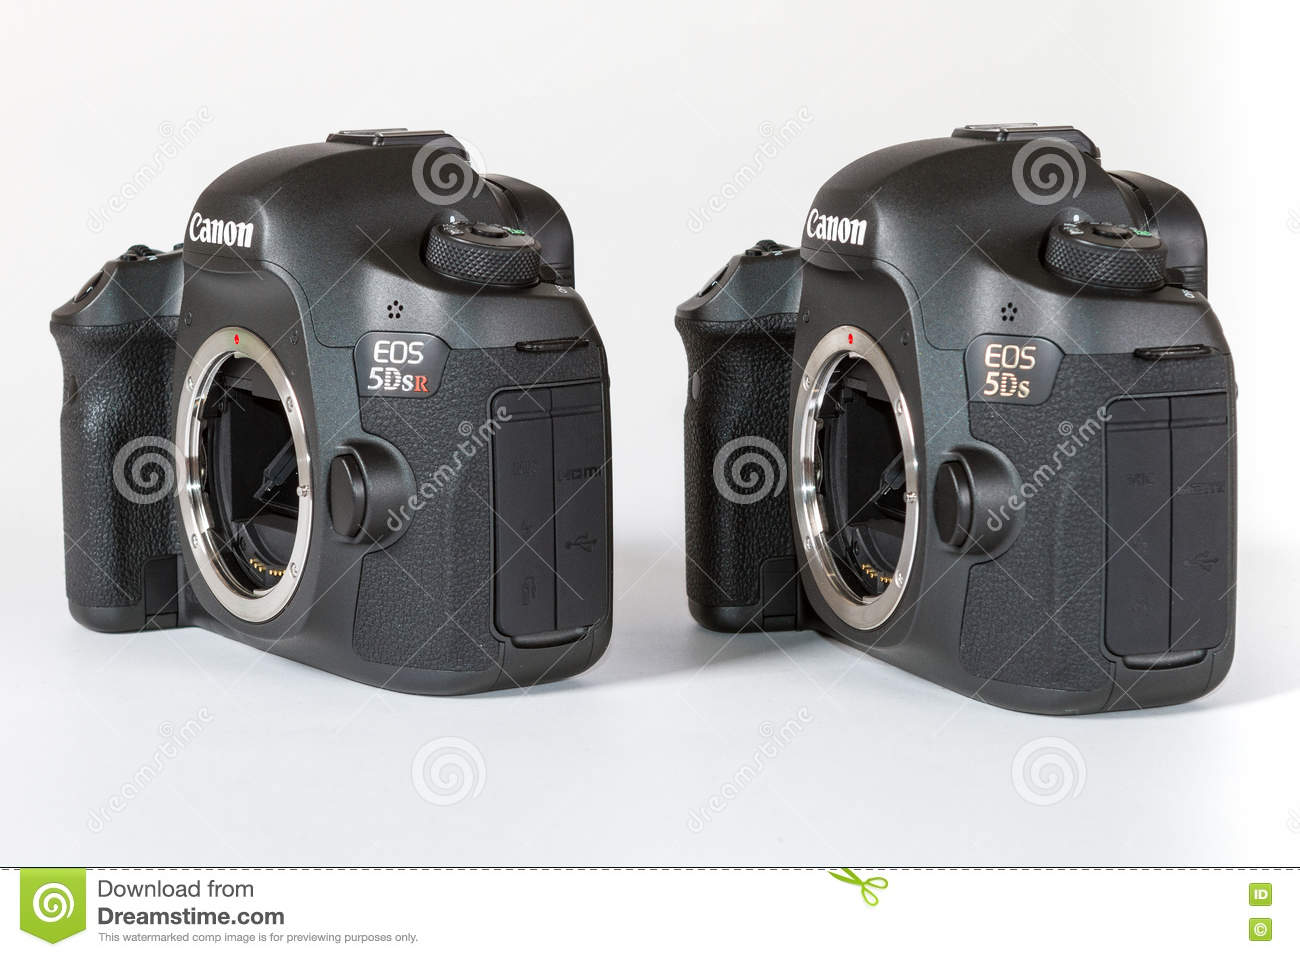 CANON EOS 5DSR and 5Ds DSLR 50 megapixels